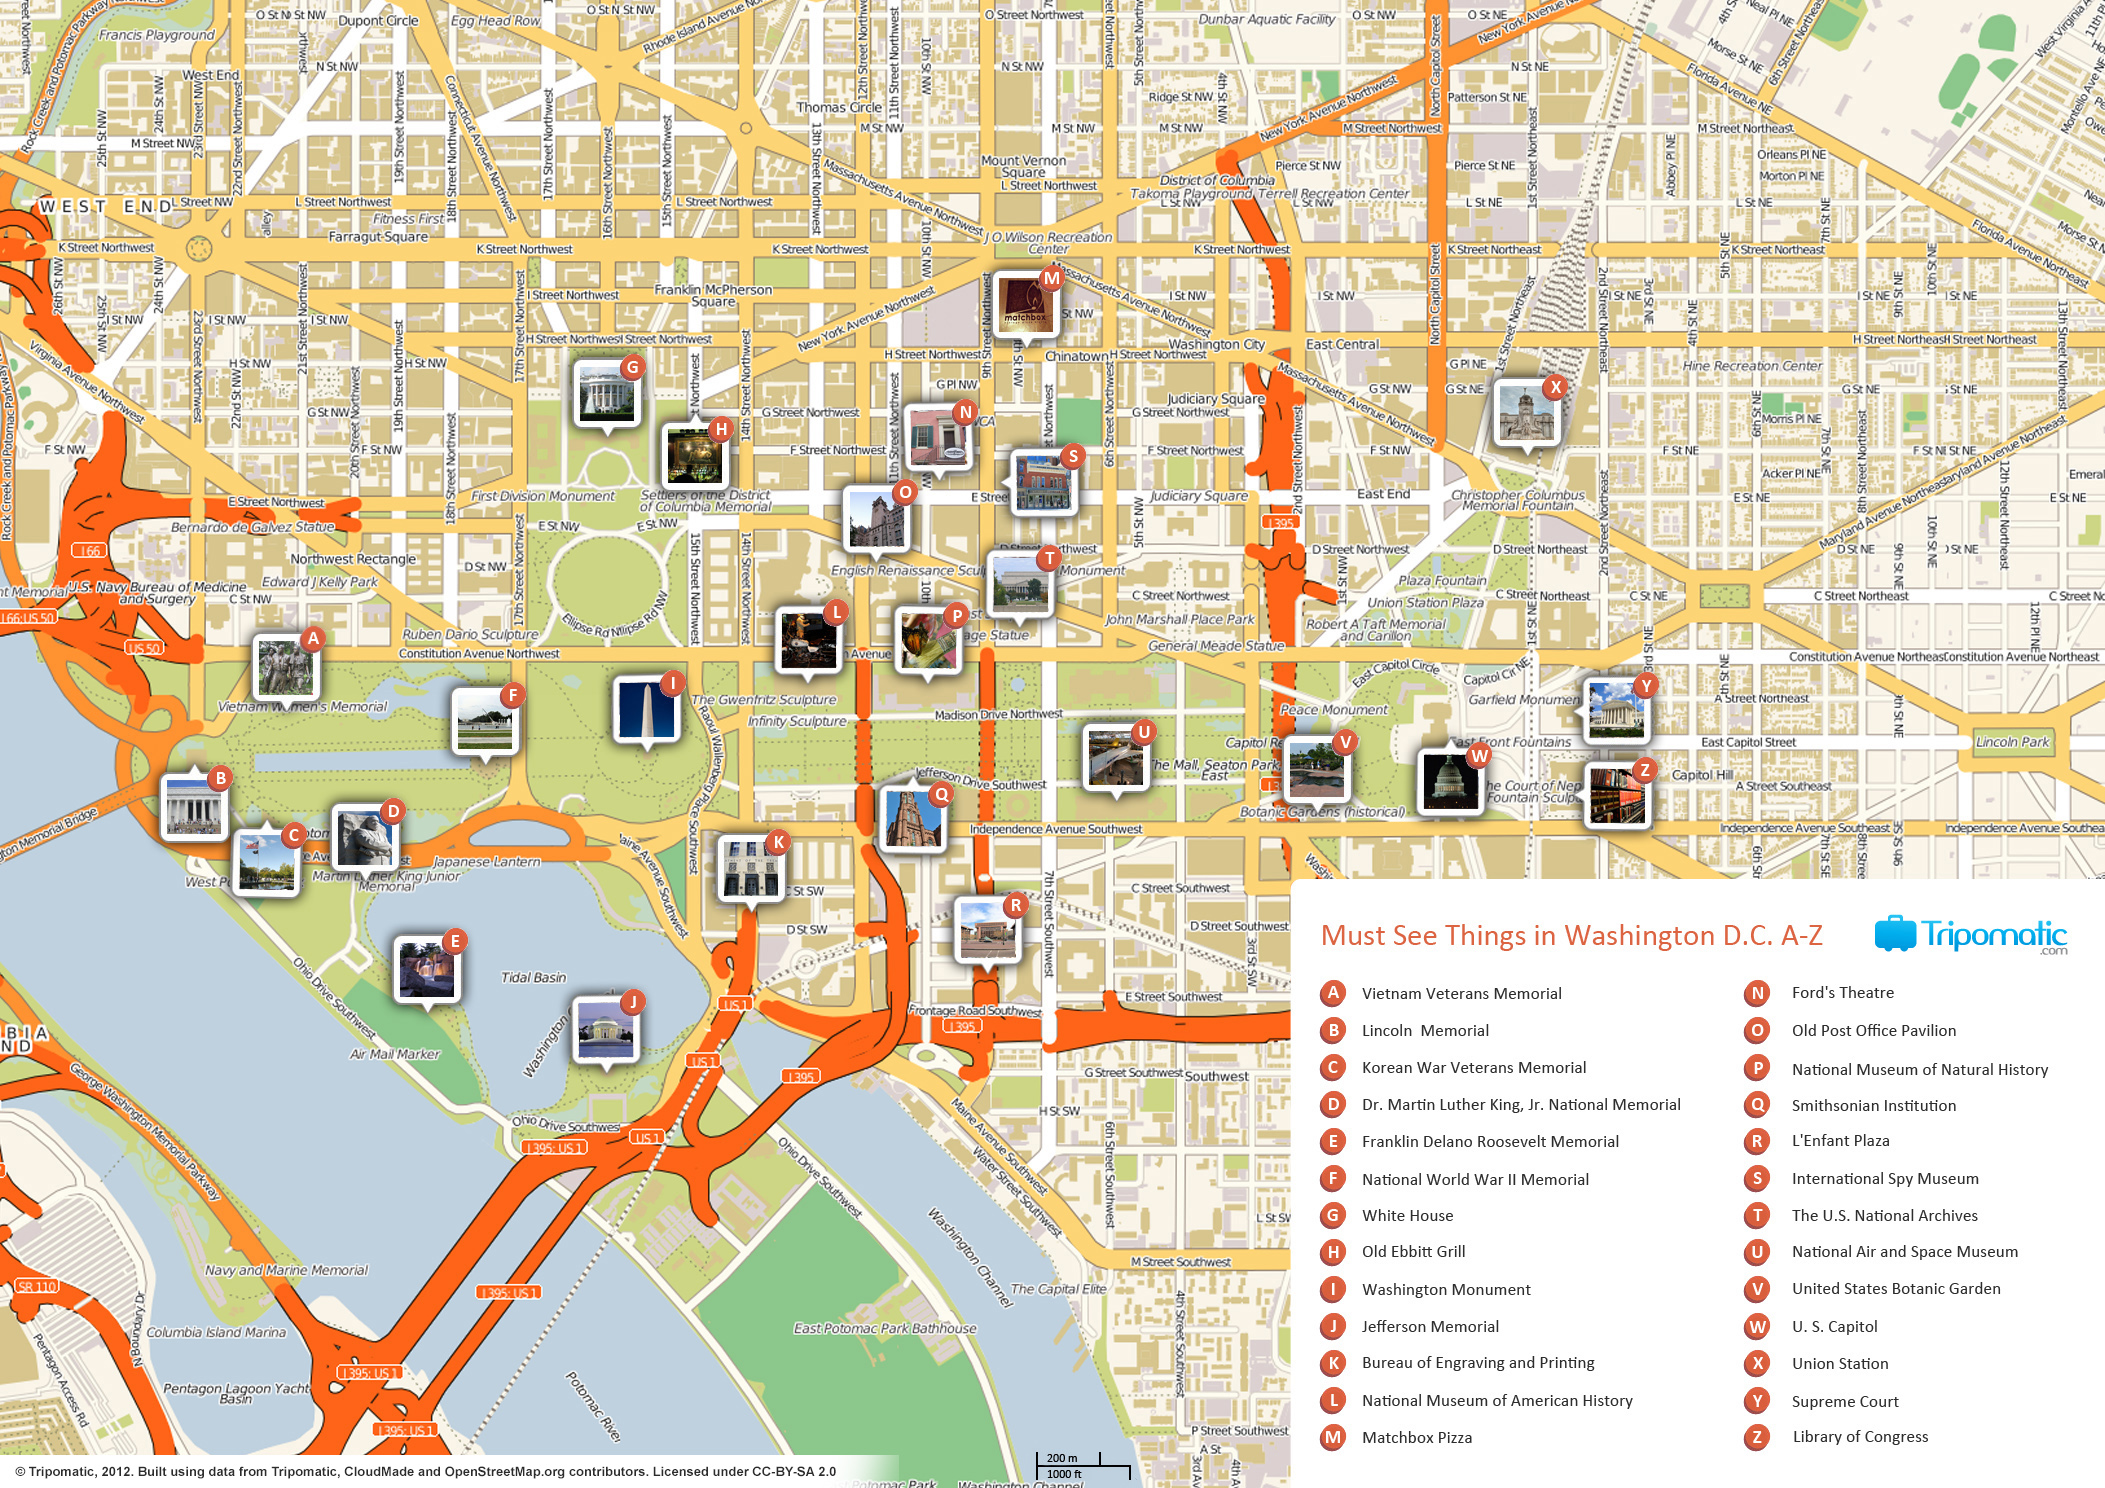 washington-dc-attractions-map-large.jpg